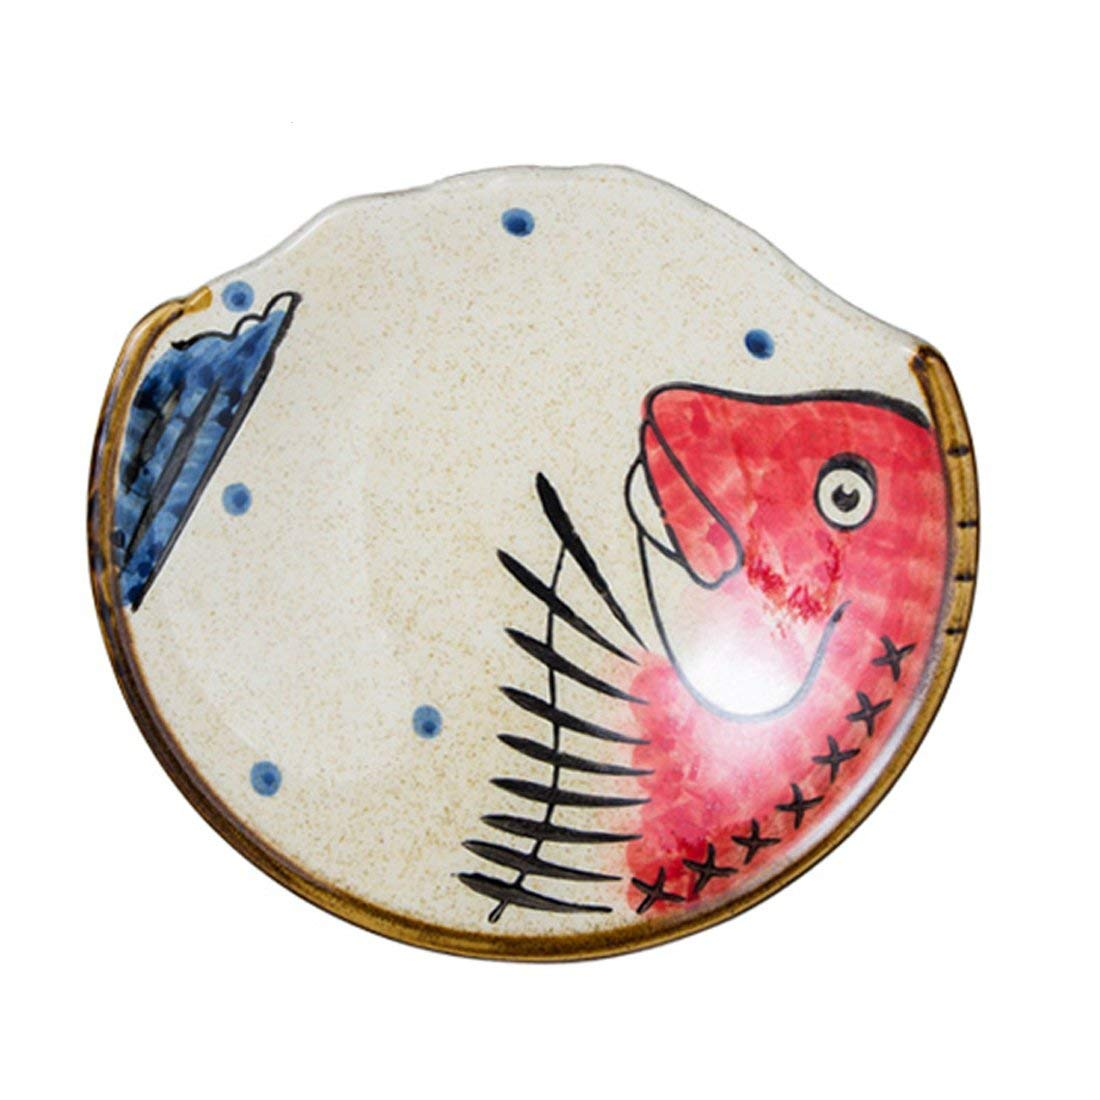 CoCoMe Half Noon Irregular Edge Hand Drawing Fish Ceramic Porcelain Dinner Breakfast Teatime Snack/Fruit/Salad/Dessert/Bread&Butter Plate Bowl Dish Gift for Friends